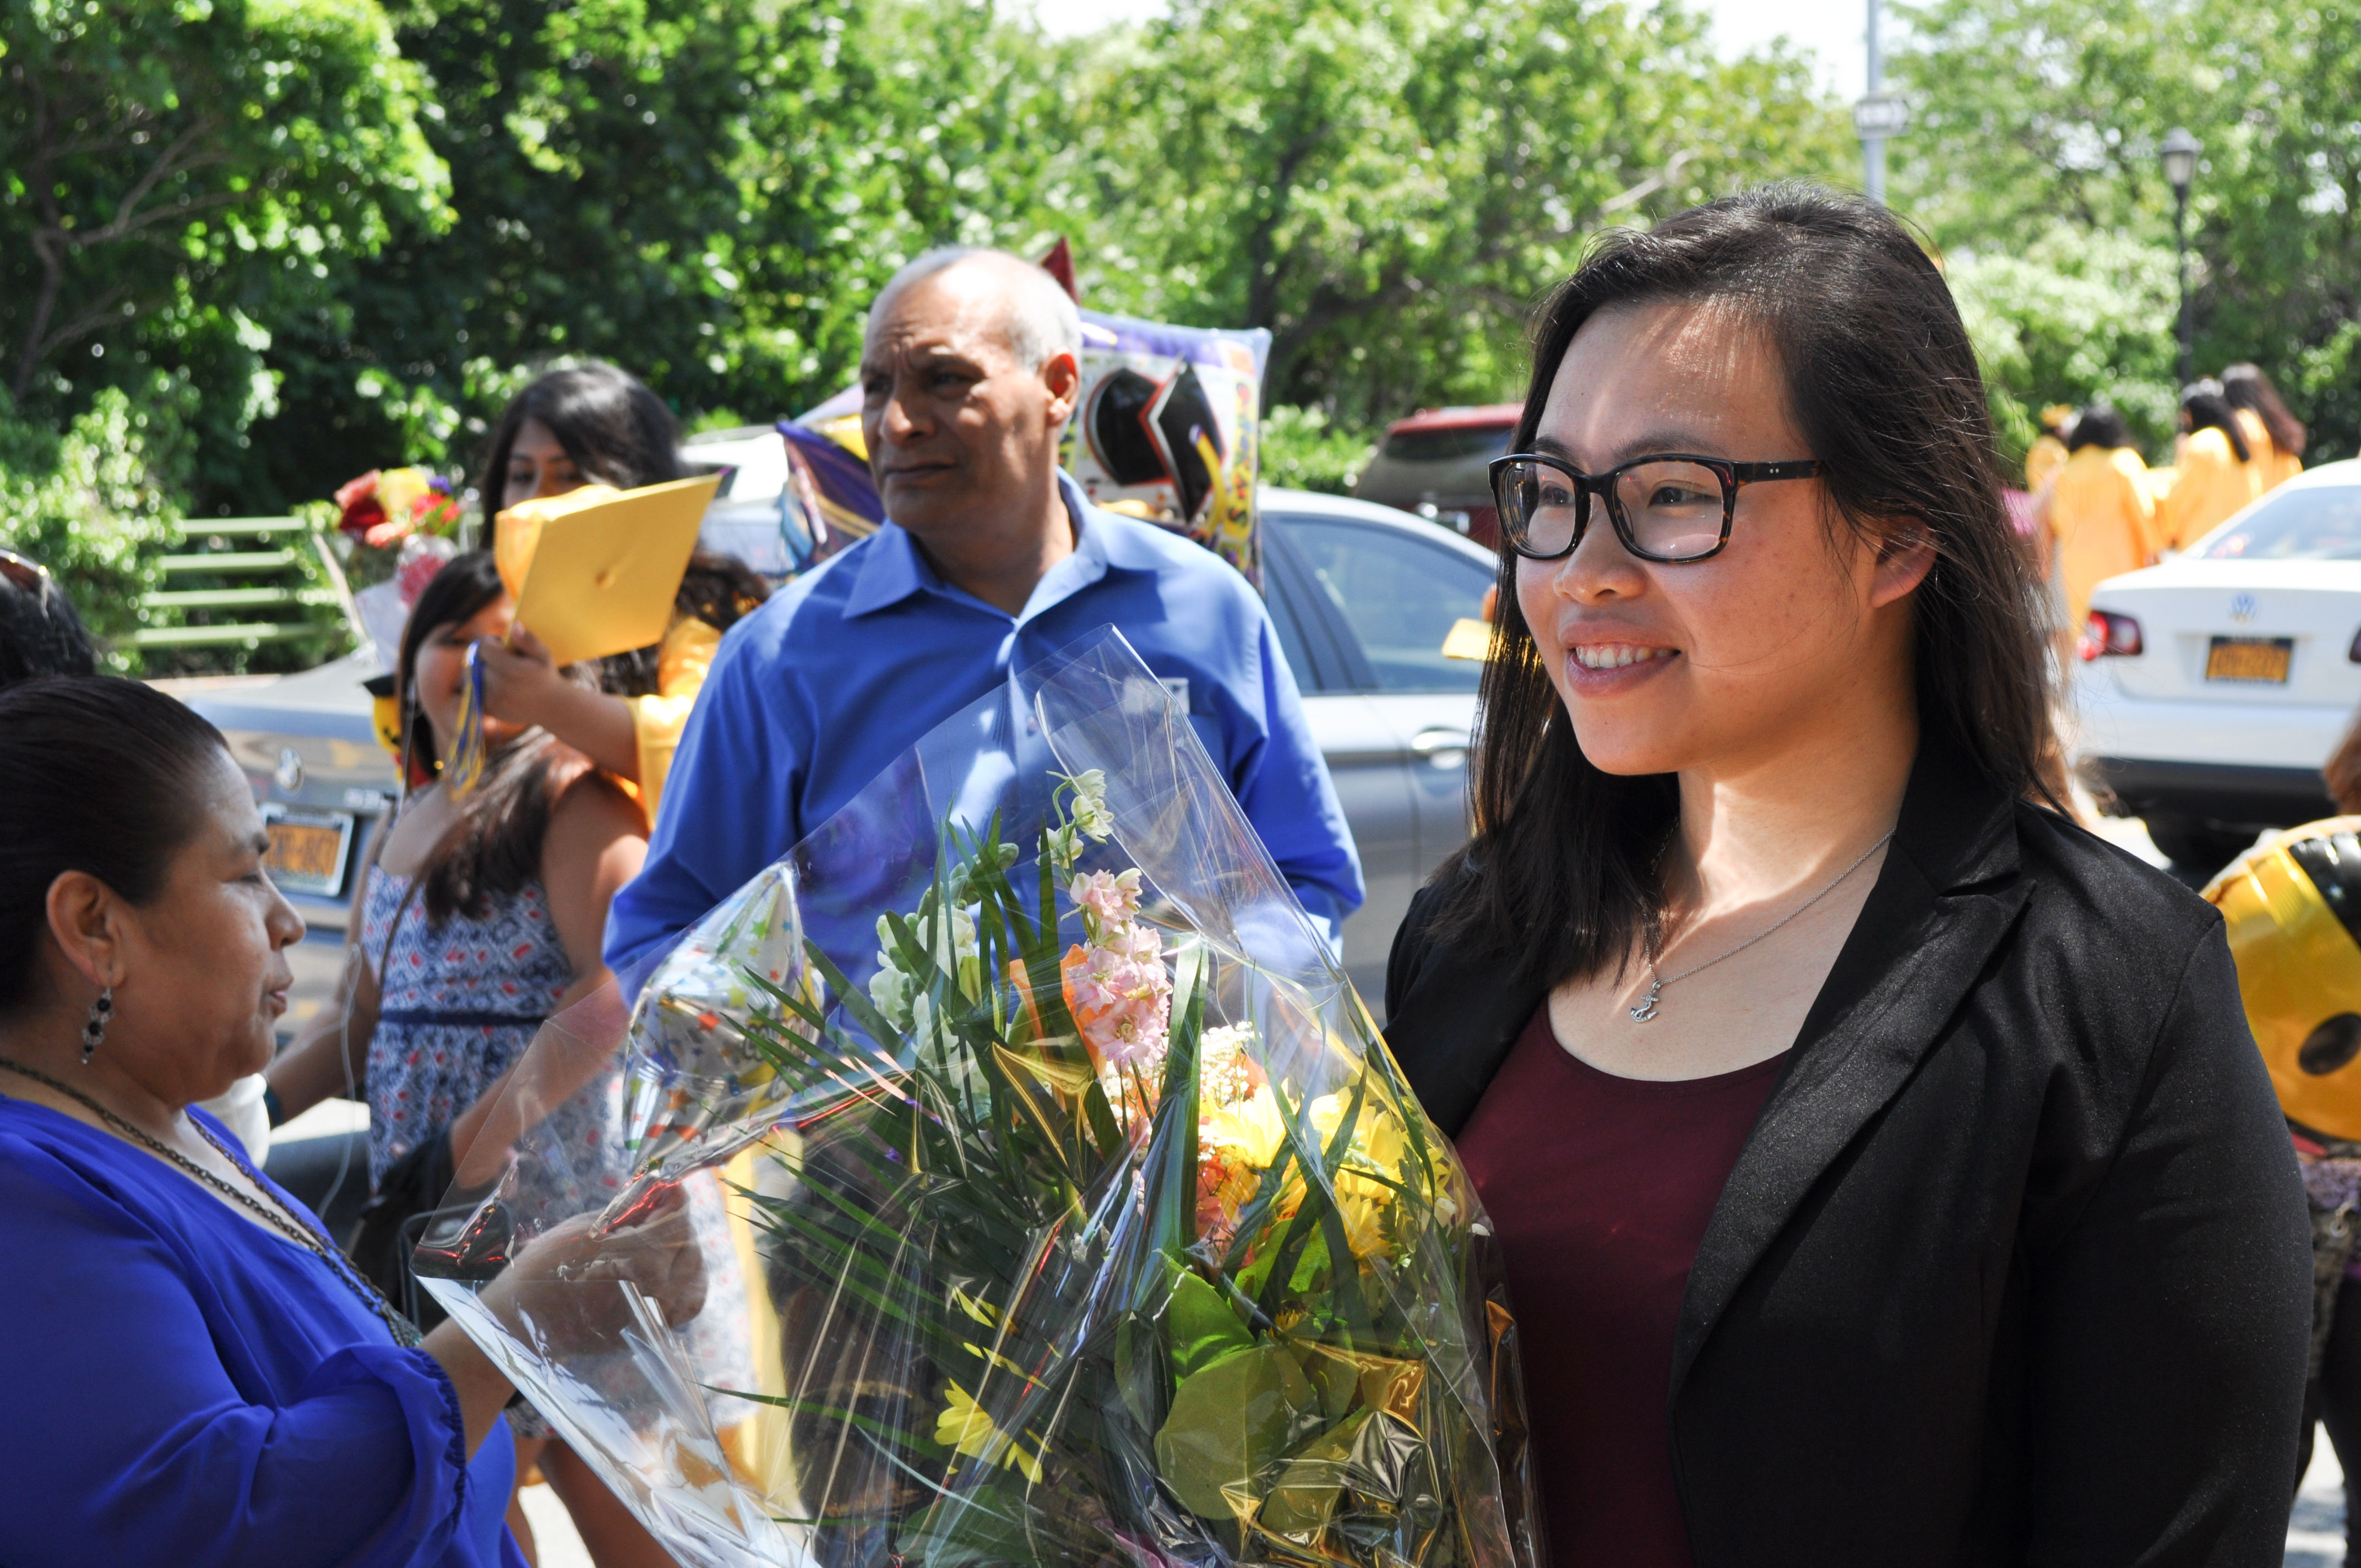 Qingmei Wu looks on as M.S. 88 students and parents gather for pictures after the graduation ceremony on Wednesday morning.